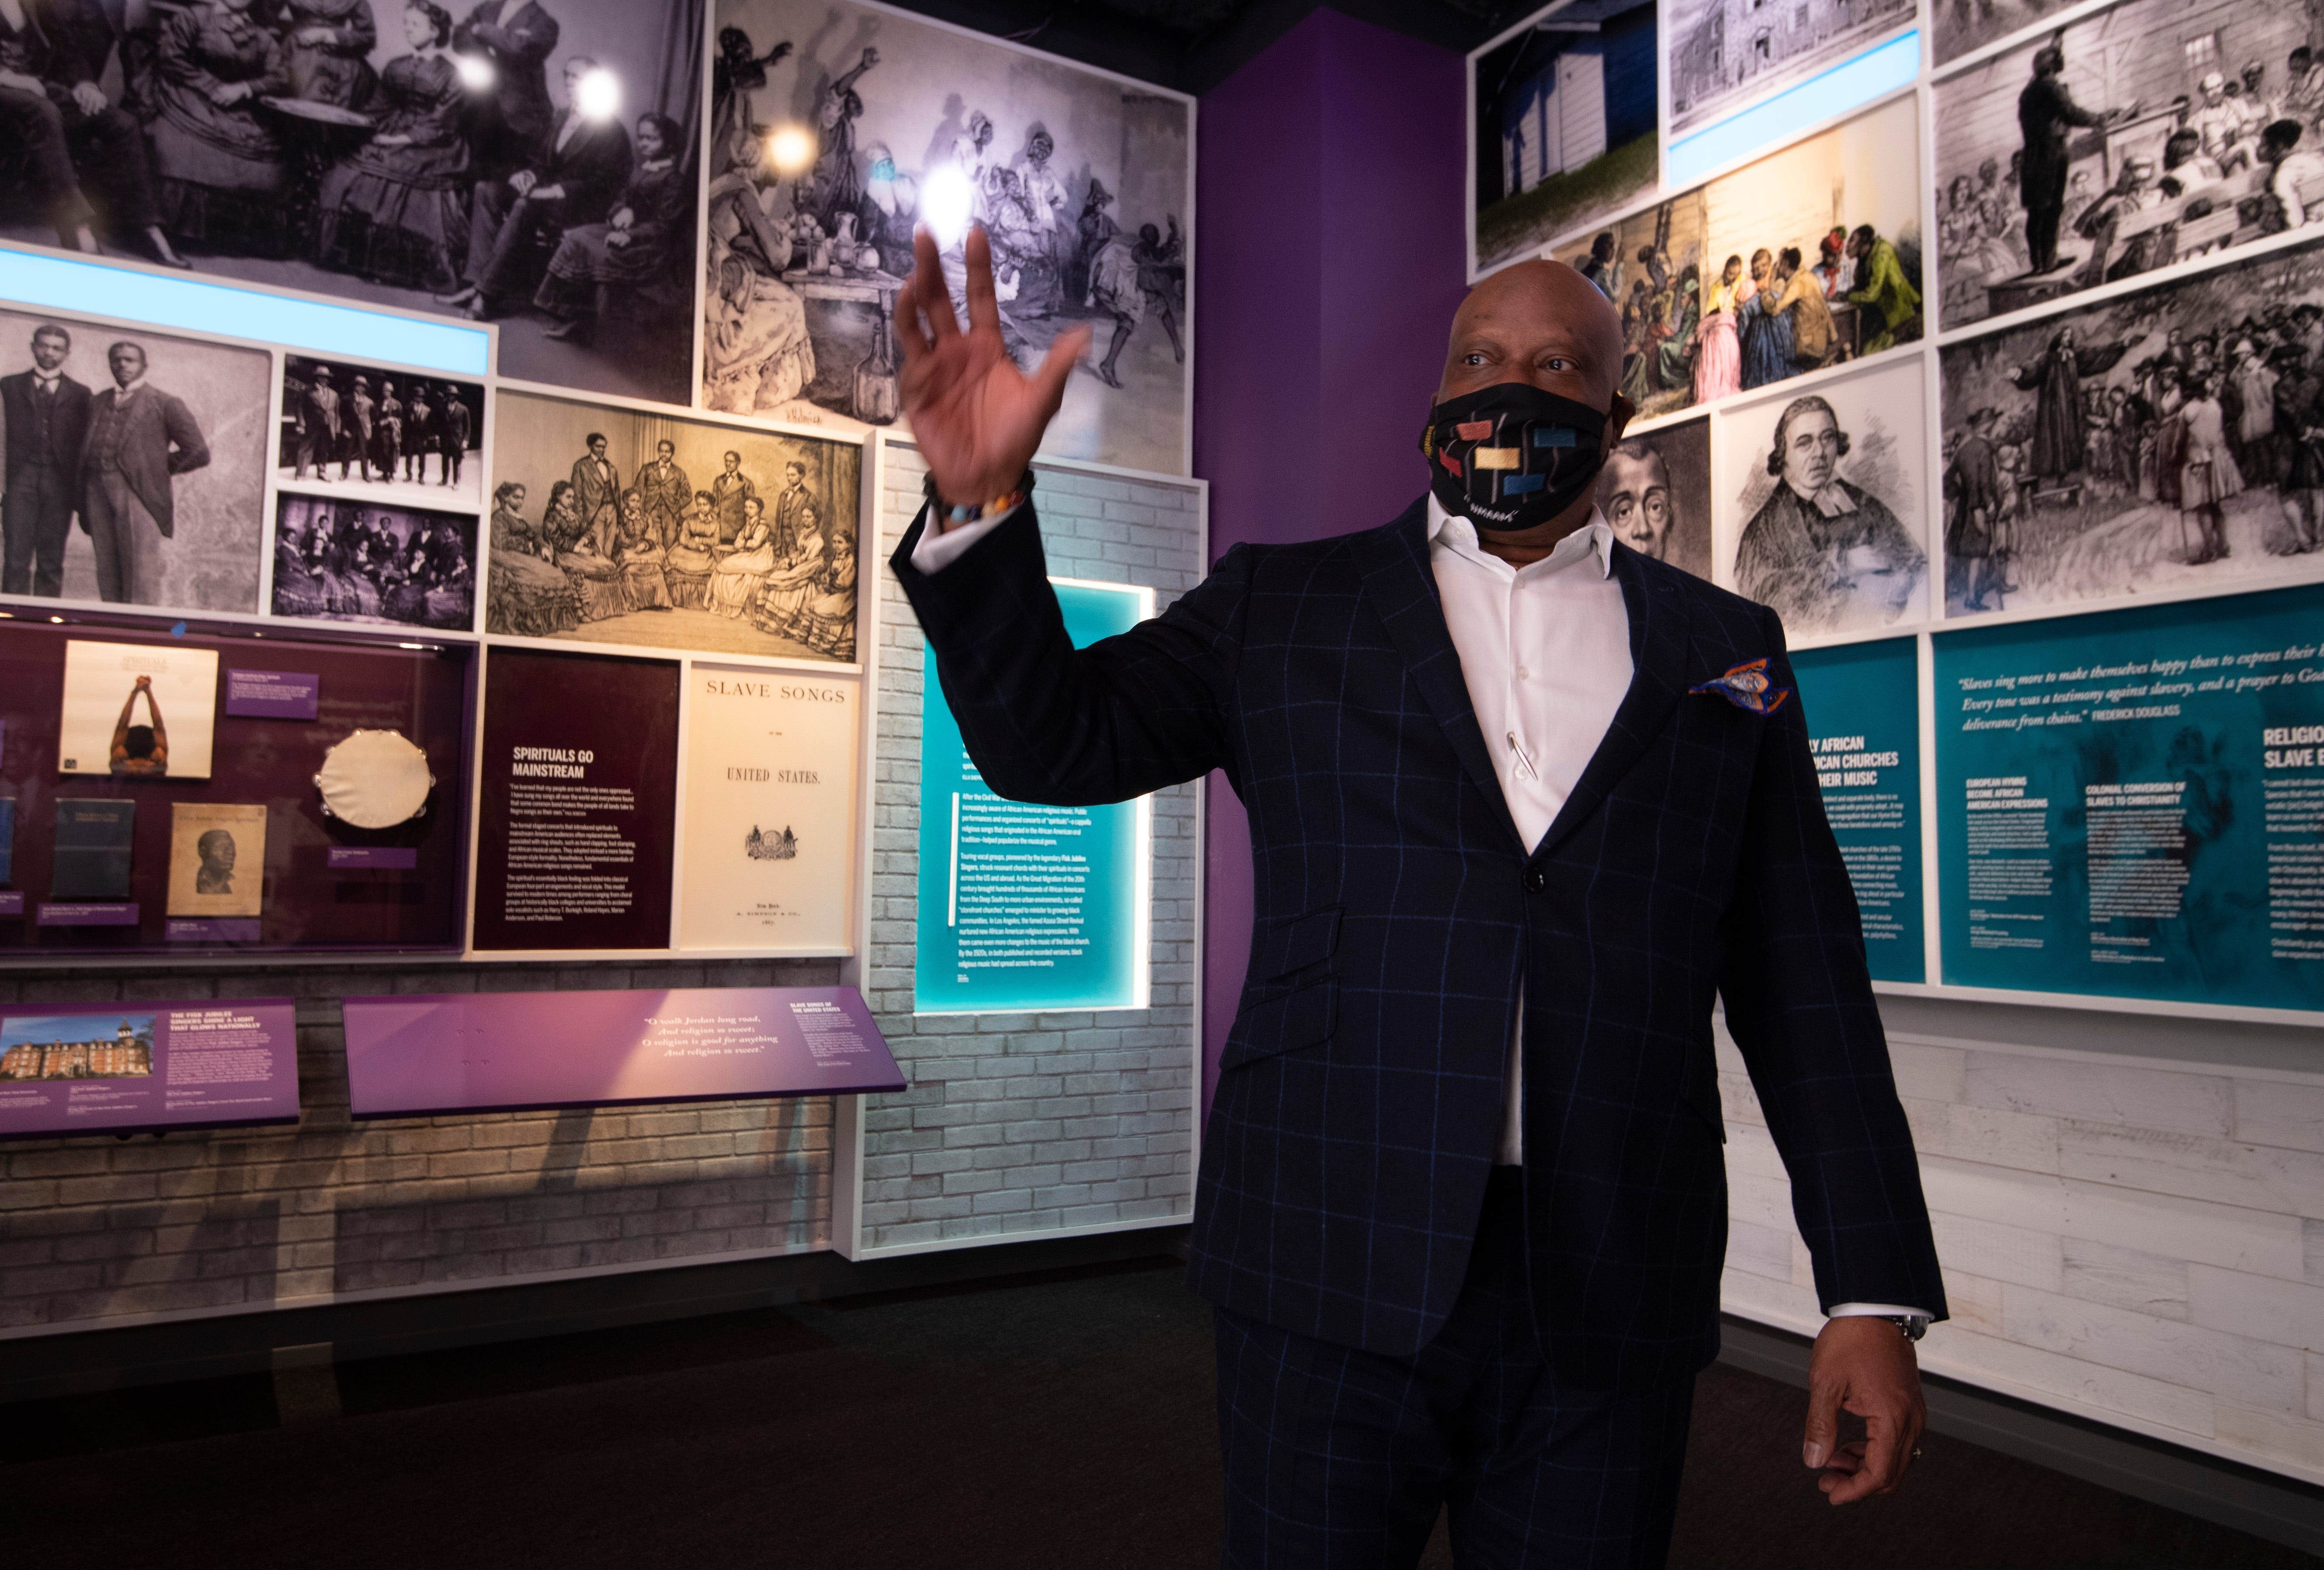 Henry Hicks president and CEO of the National Museum of African American Music guides a media tour through the museum Tuesday, Jan. 12, 2021 in Nashville, Tenn. Visitors will be able to enjoy the museum when it opens to the public in late January.